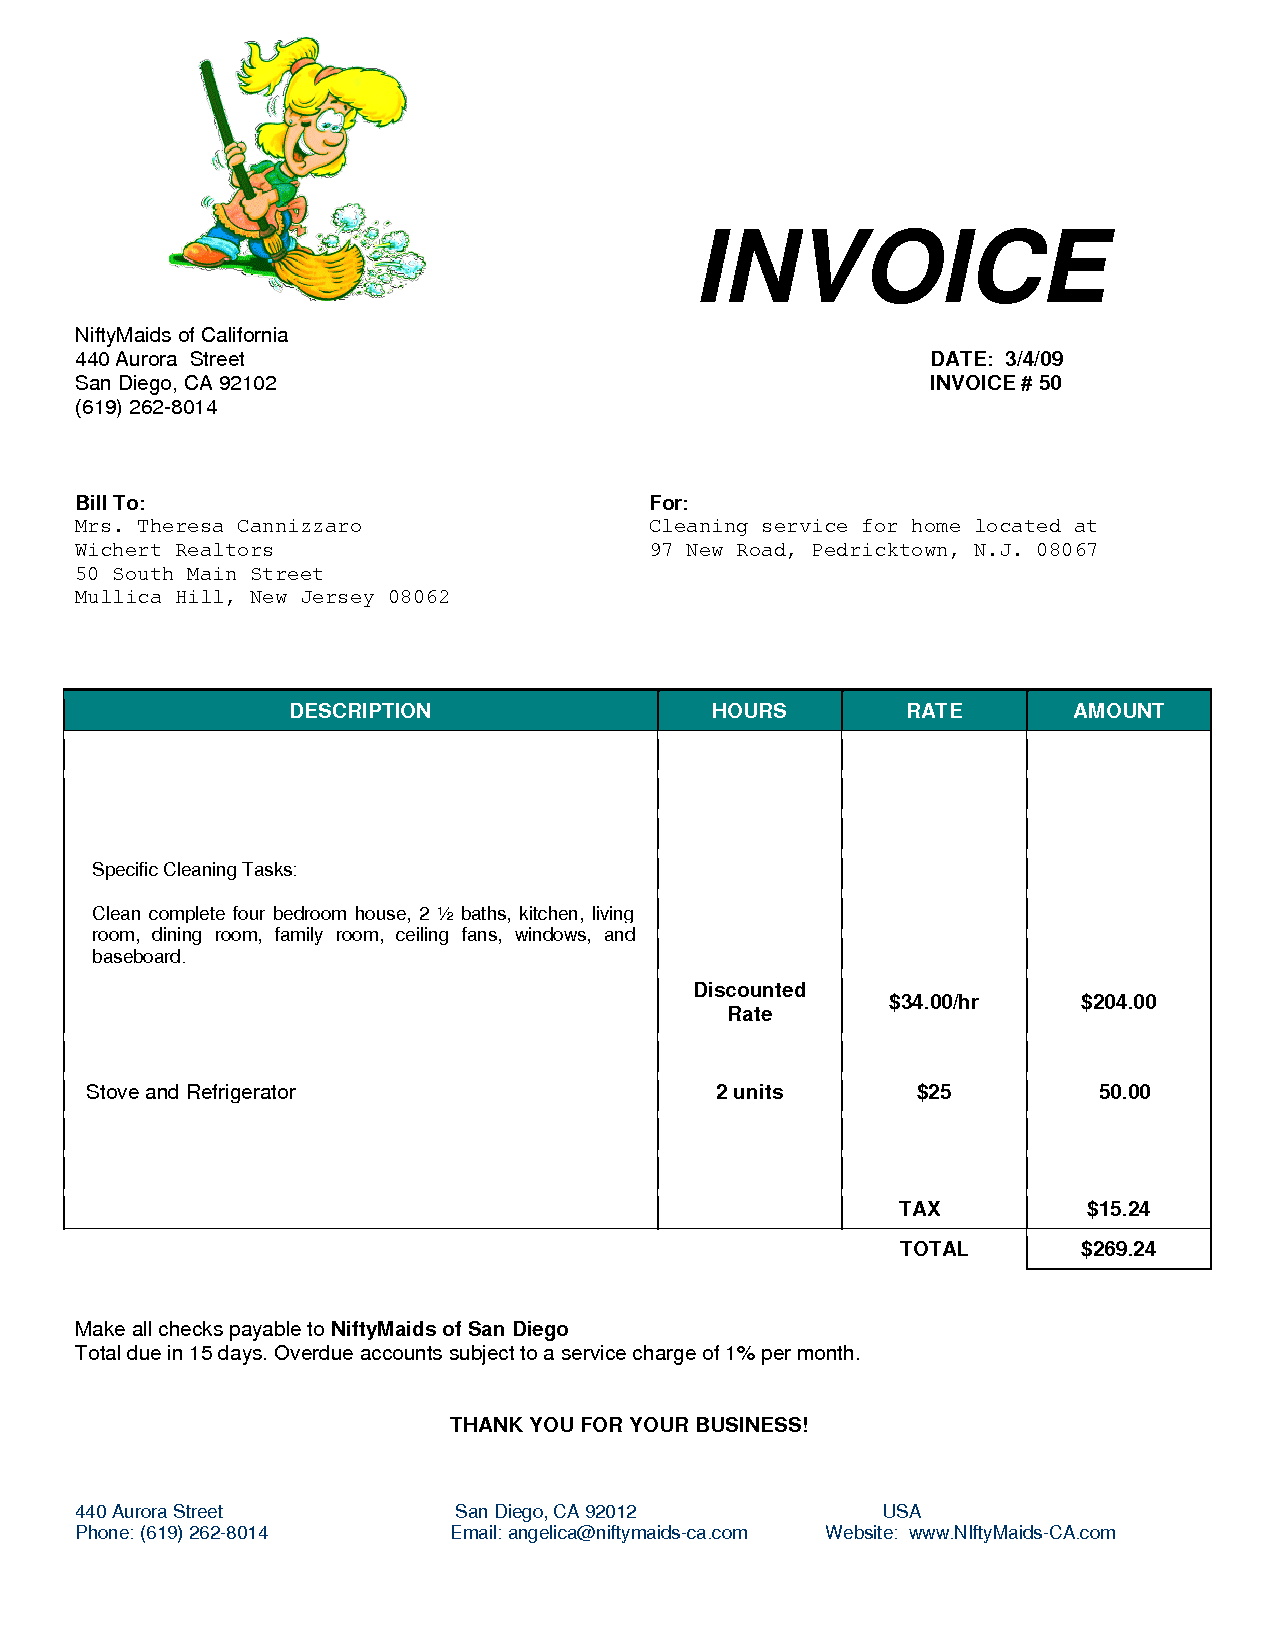 Cleaning Bill Invoice Services Invoice Ideas For The House - Free basic invoice template for service business